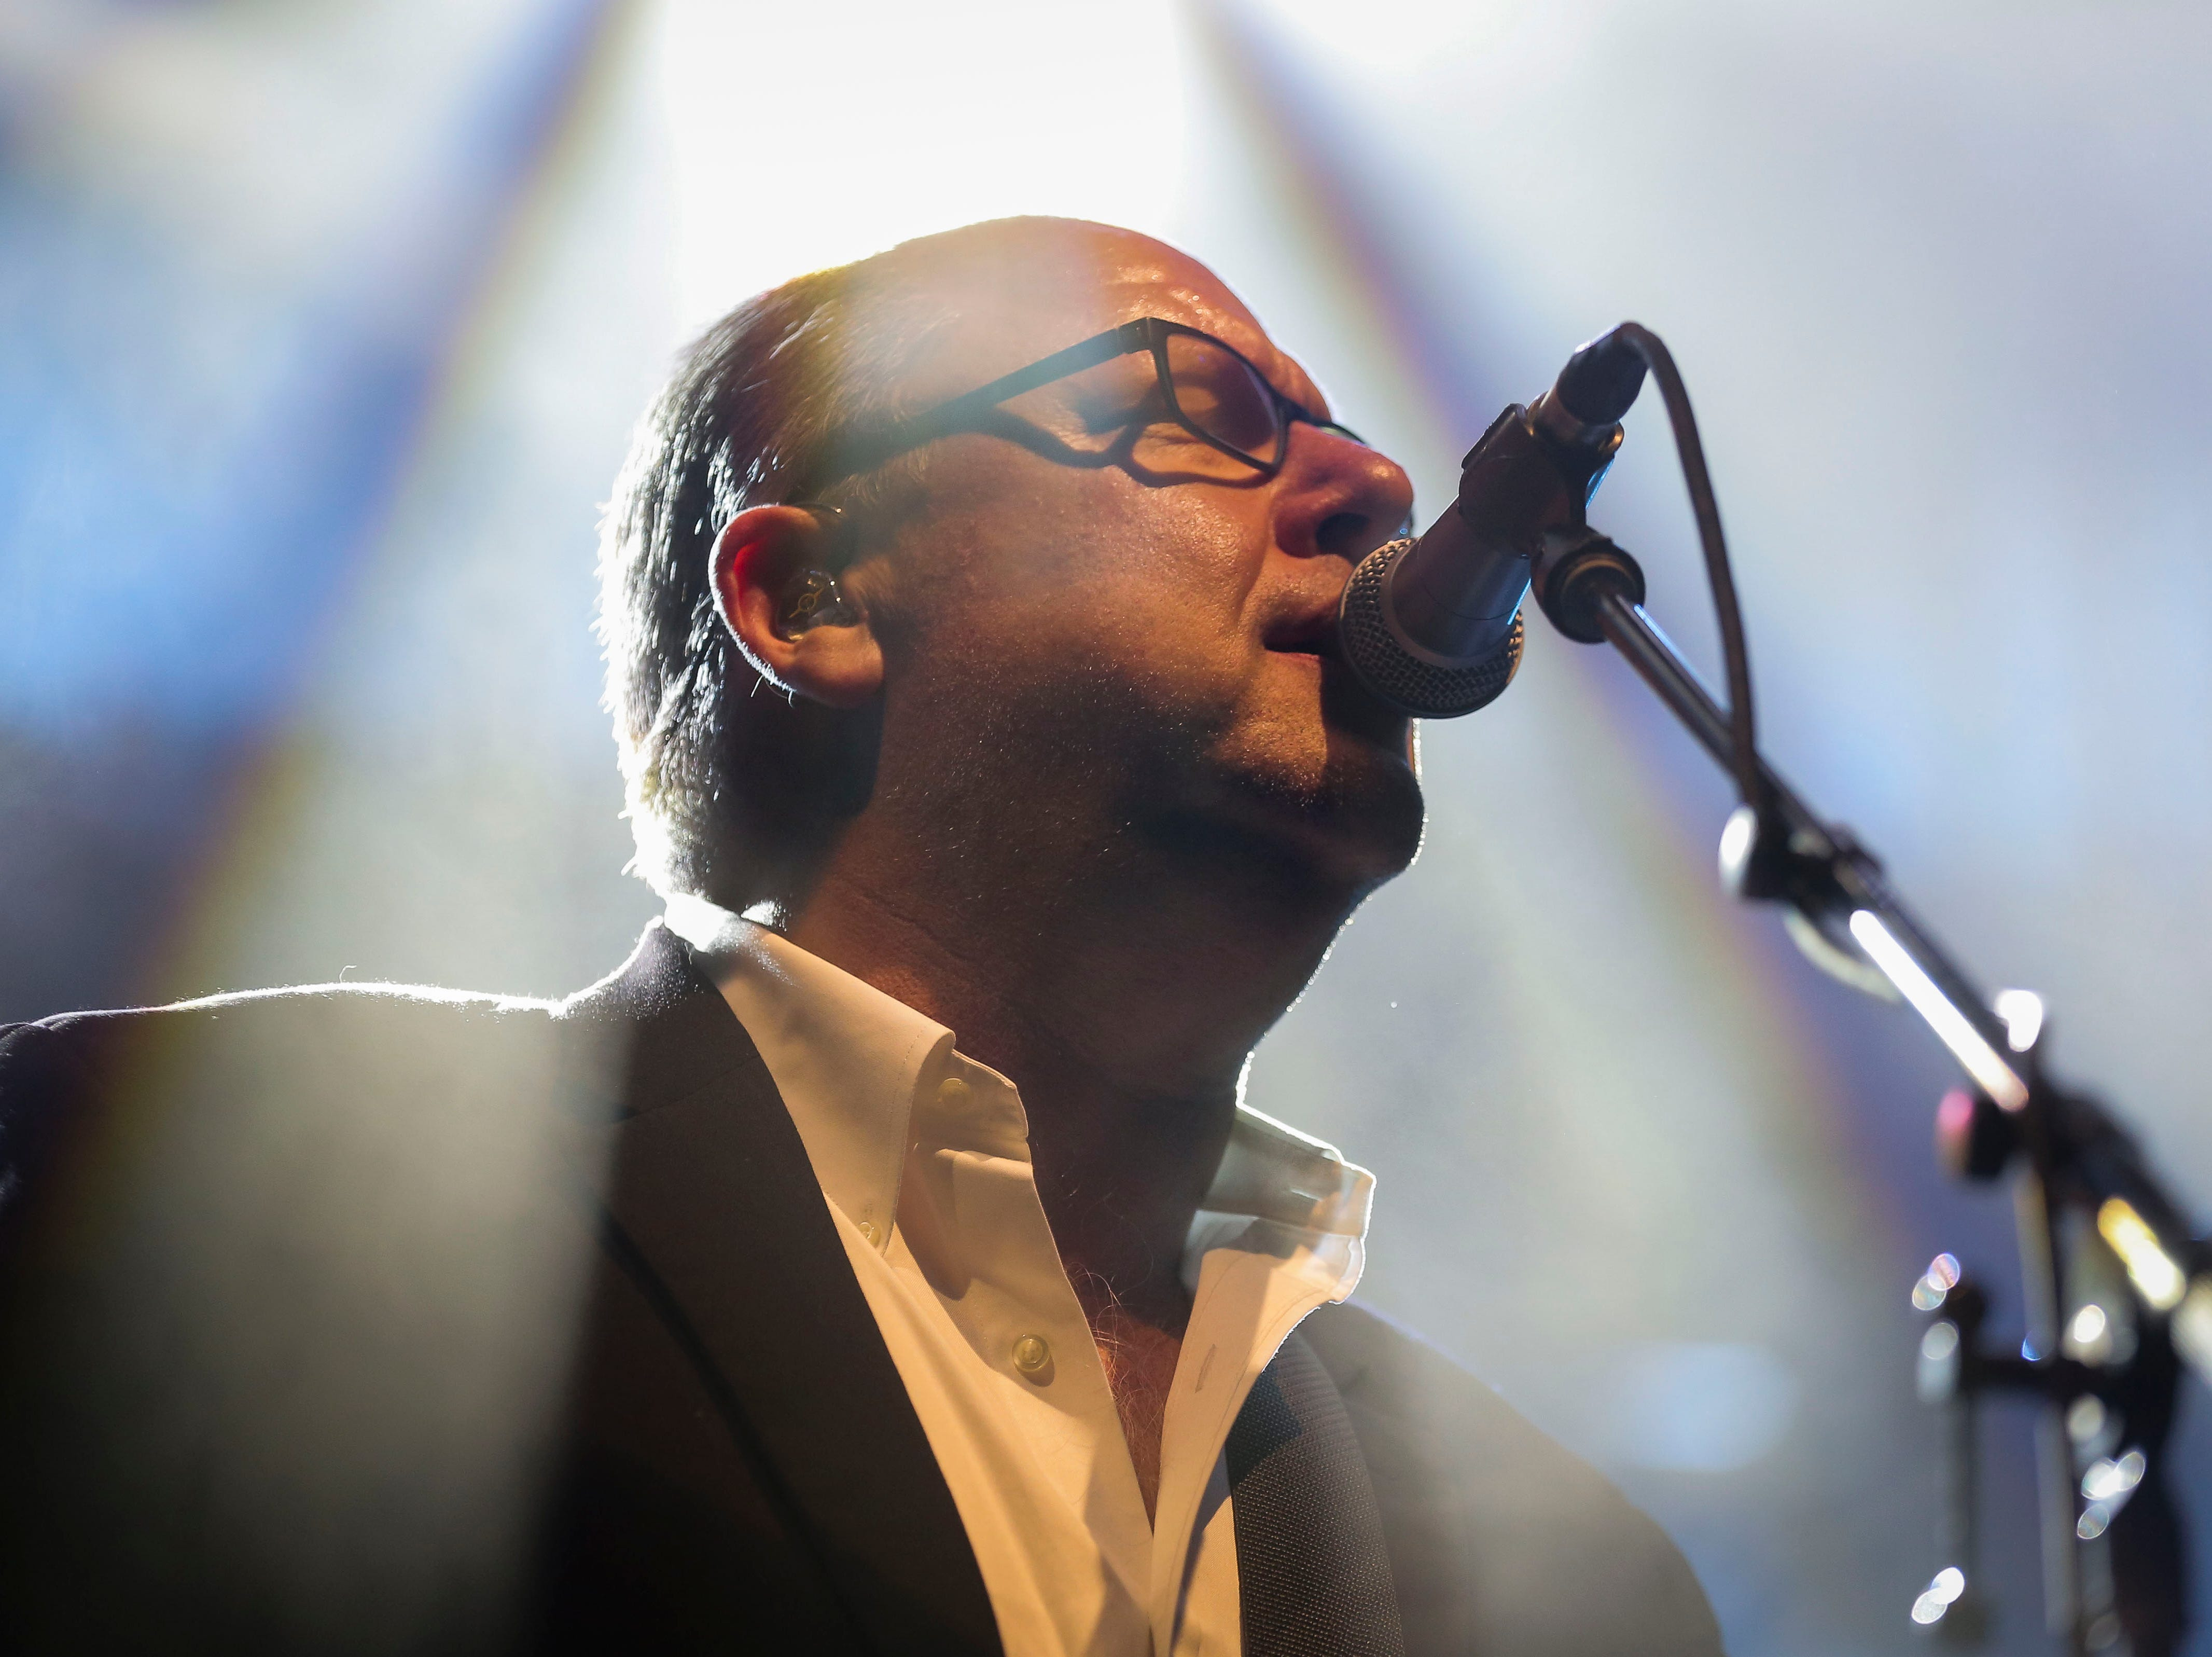 """Charles Thompson IV """"Black Francis,"""" lead vocalists and guitarist of The Pixies, performs during the first show of the  Weezer x Pixies 2019 tour at the KFC Yum! Center in downtown Louisville, Ky. on Friday, March 8, 2019."""